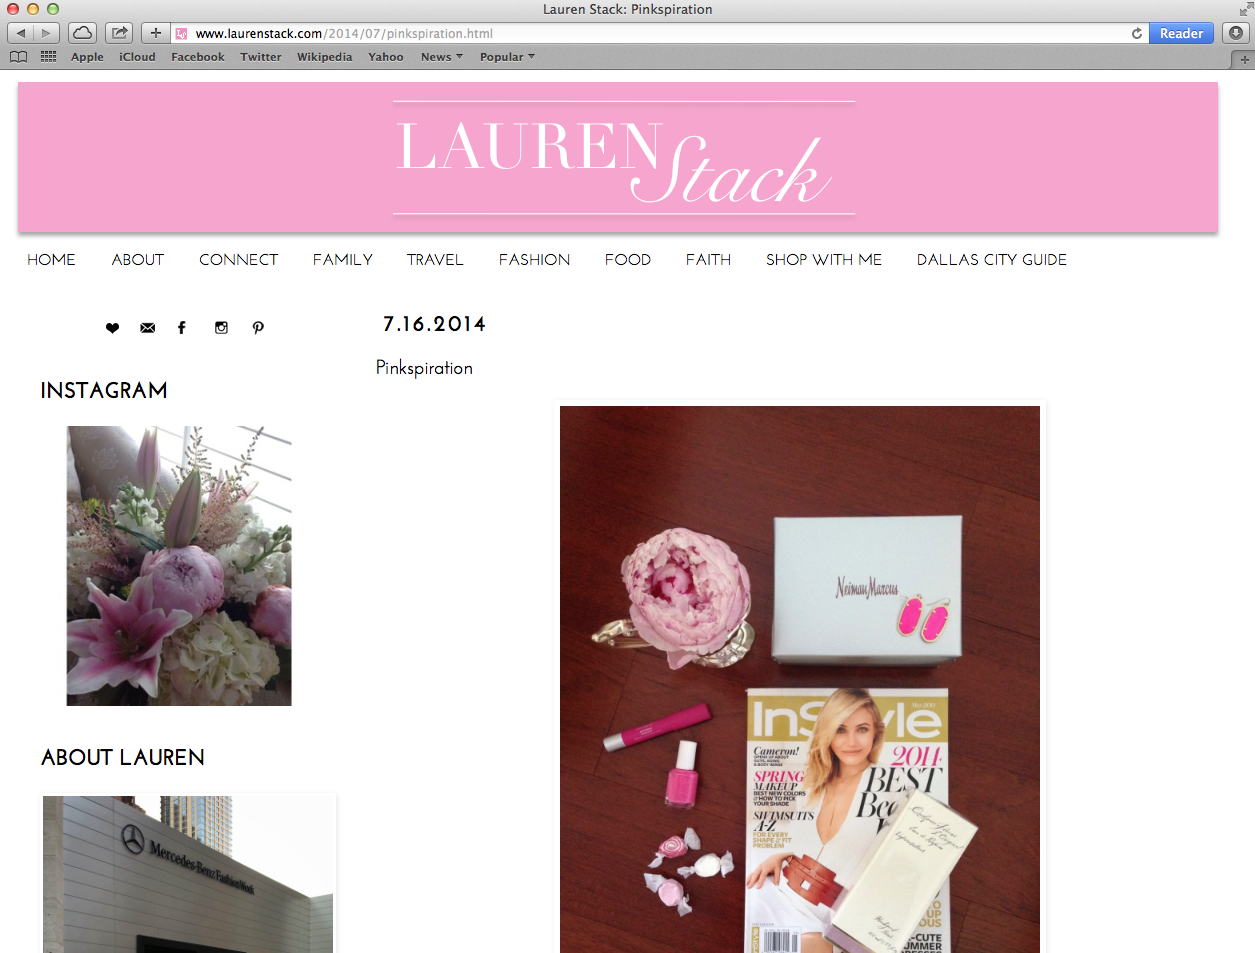 LaurenStack.com Blog Revamp Preview    <guest post from  TheWellSet.com >       So excited to be able to share a much loved blog   LaurenStack.com  . Lauren is a childhood friend of mine and she has always had a pension for style and fashion. She has turned that love into a burgeoning career as a stylist doing fabulous things like working with   Neiman Marcus   and at   New York Fashion Week  .        Lauren contacted my marketing company,    A Brand Strategy Consulting   , about updating her blog to be as fabulous as she is. We had a blast picking out colors, headers, and fonts. It was really great to work with someone that shares the same passion for their work and is truly fearless about following her dreams. I am blessed to have clients like her and let's just say I try to keep the use of 'blessed' in check for when it's real. This is one of those times when it is totally real…   Read more here.